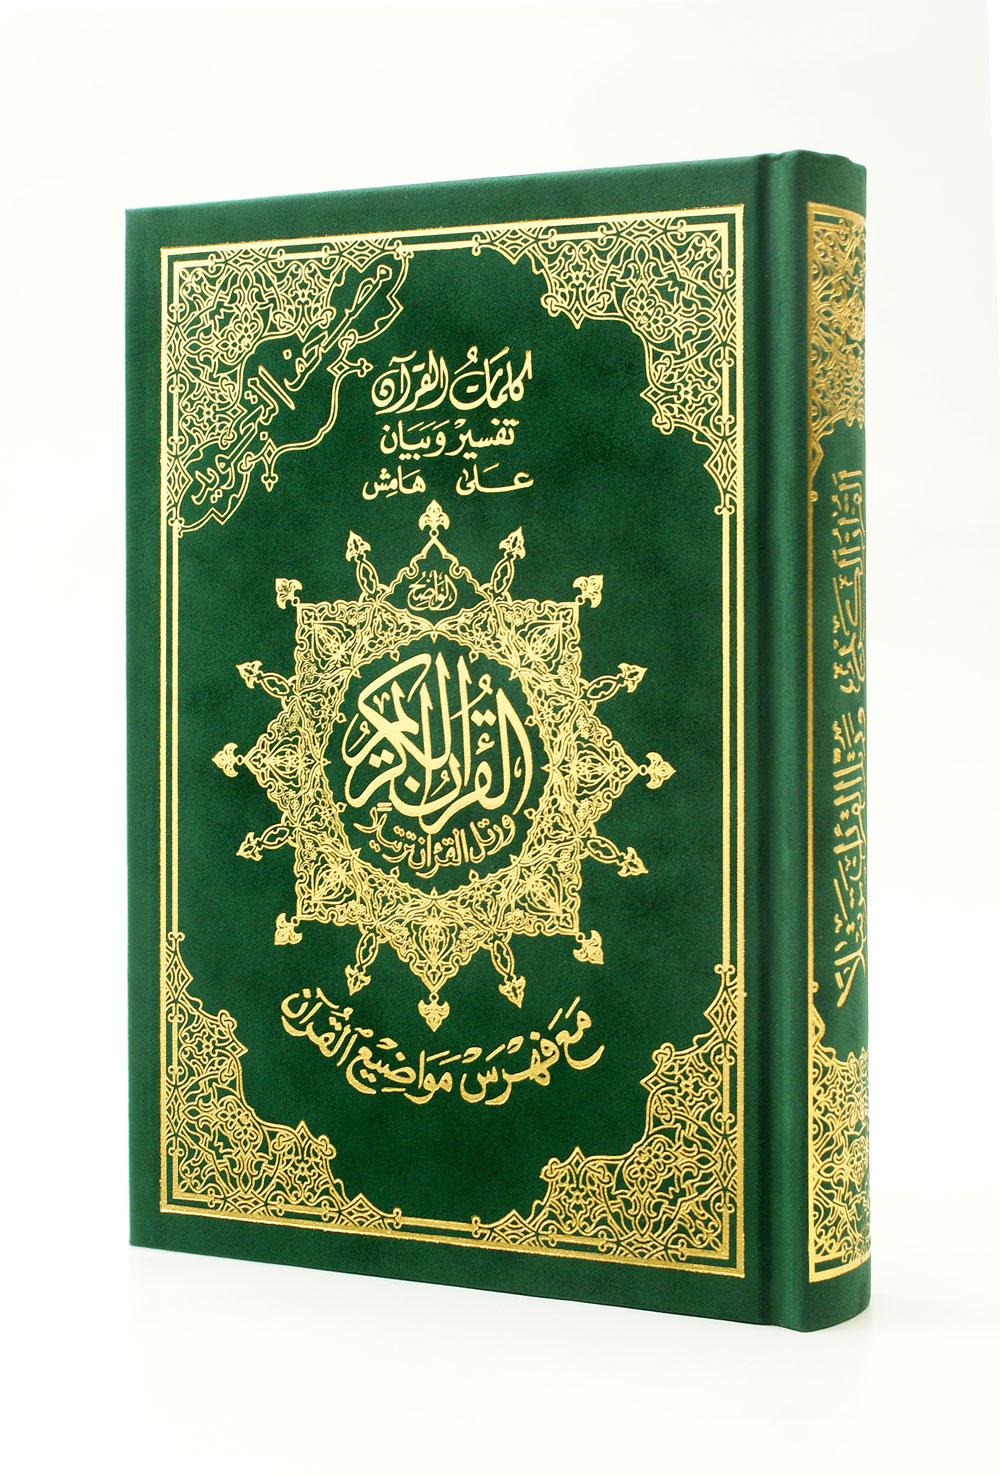 quran pen smart card tajweed